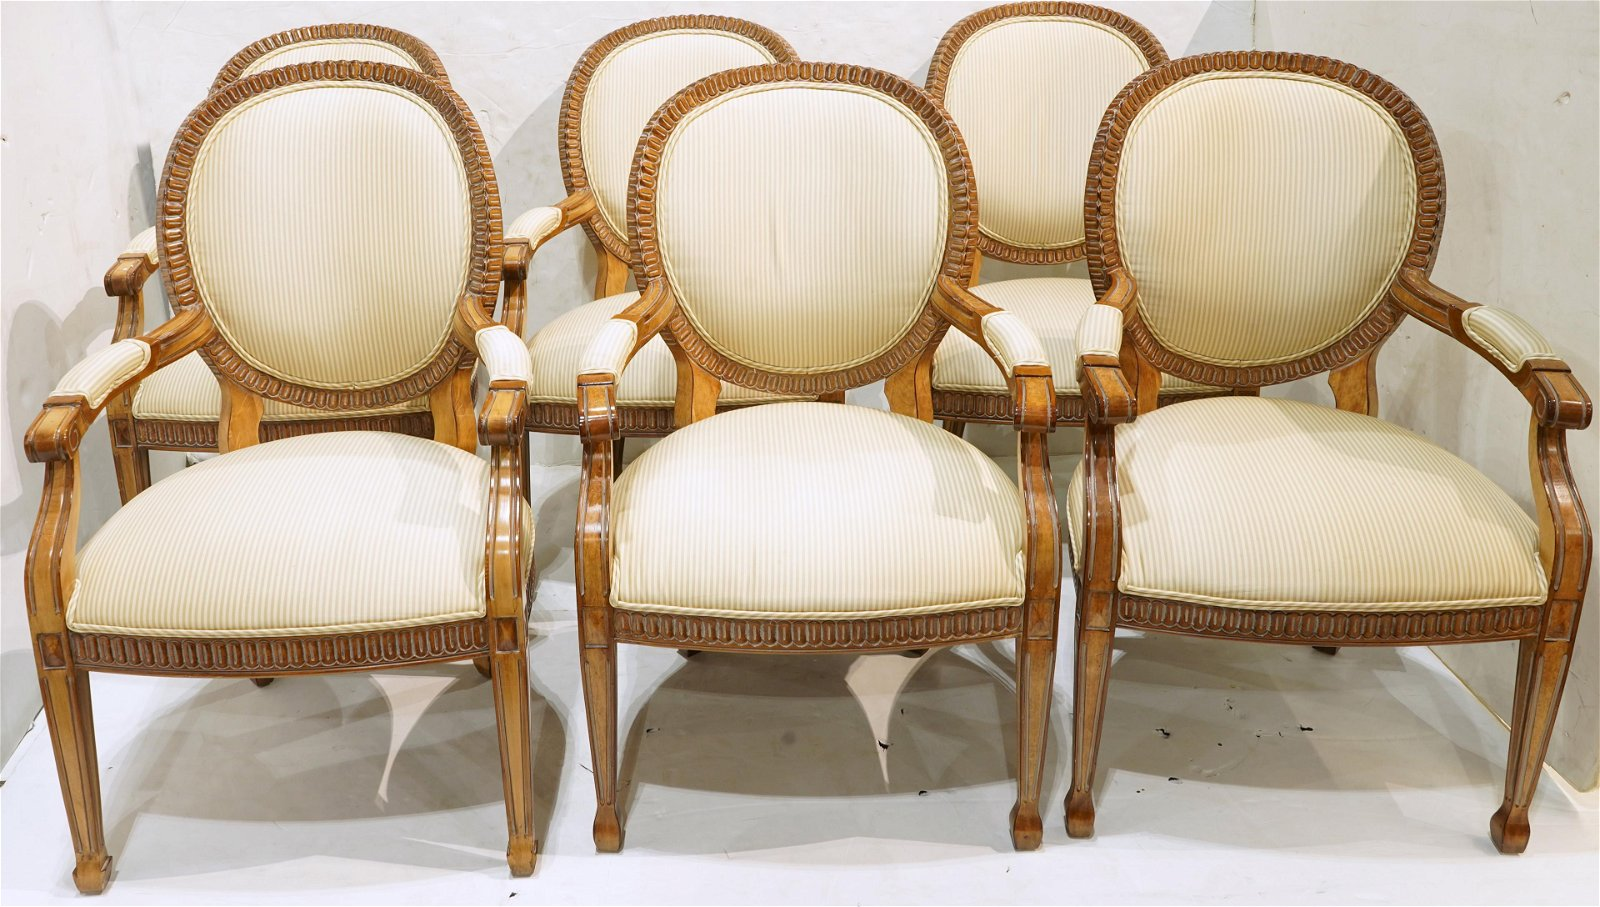 (lot of 6) Modern Italian Neoclassical style carved